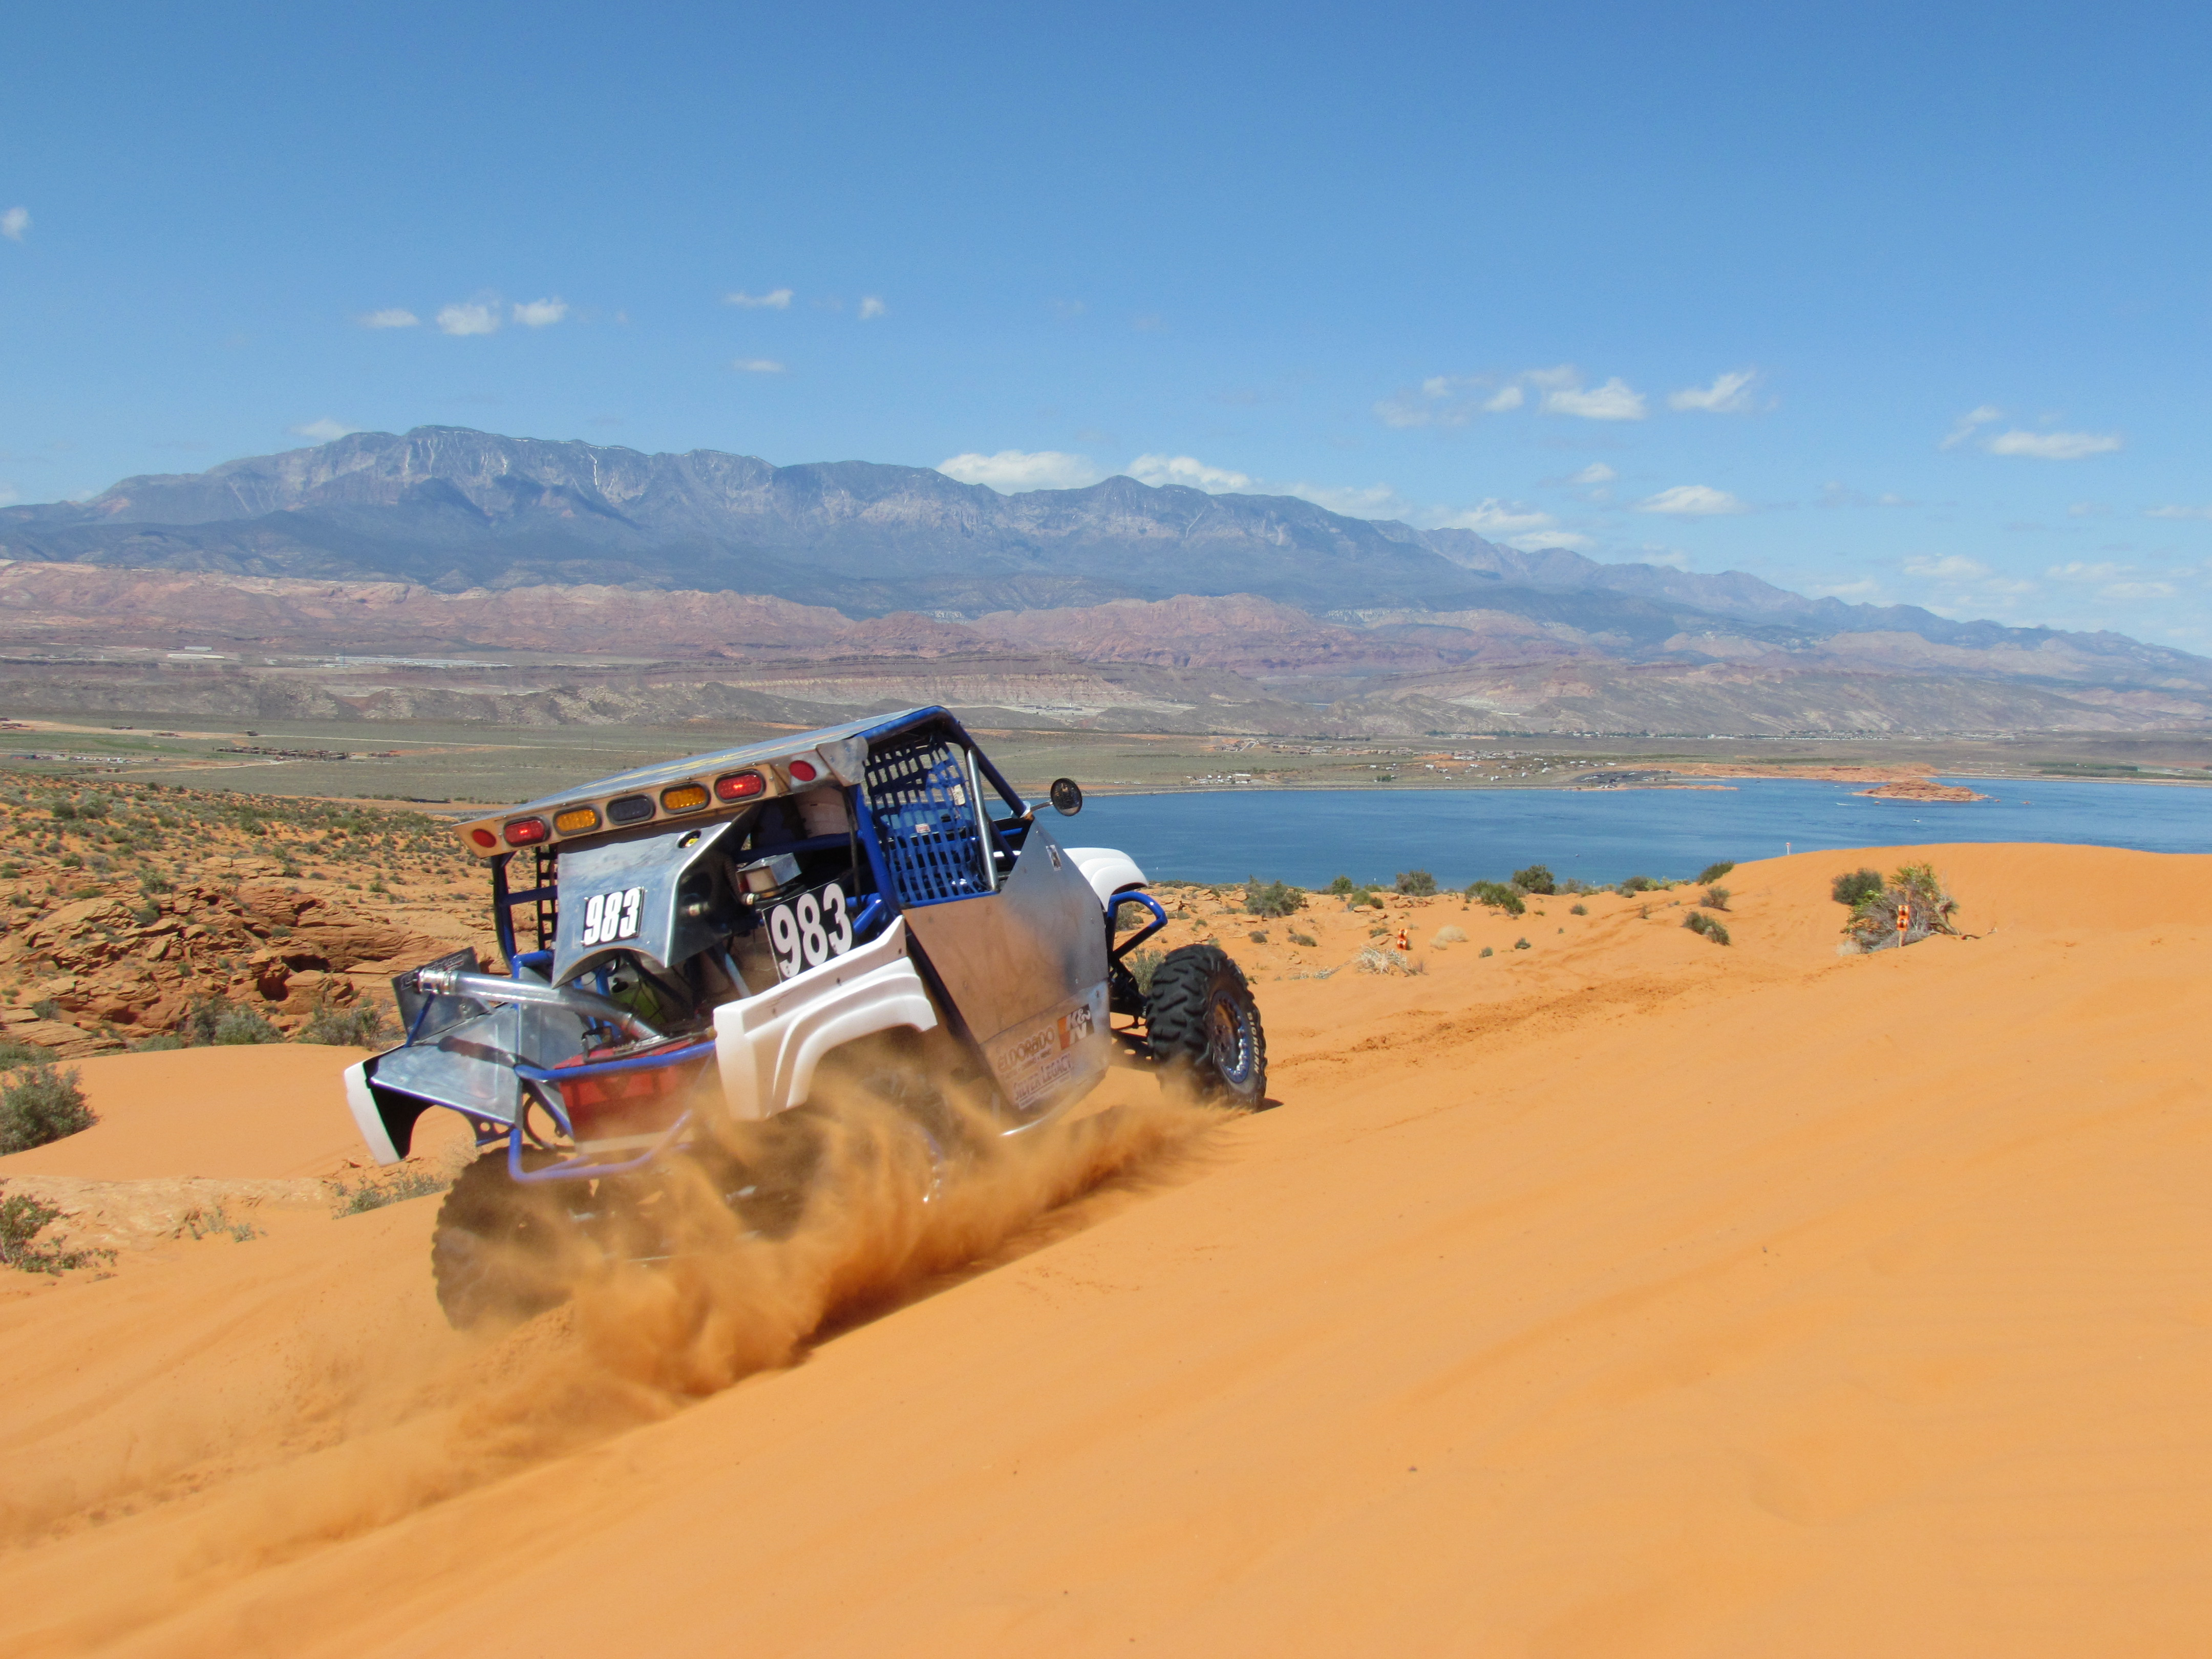 Top 10 Sand Dune Riding Locations Blog Part 10